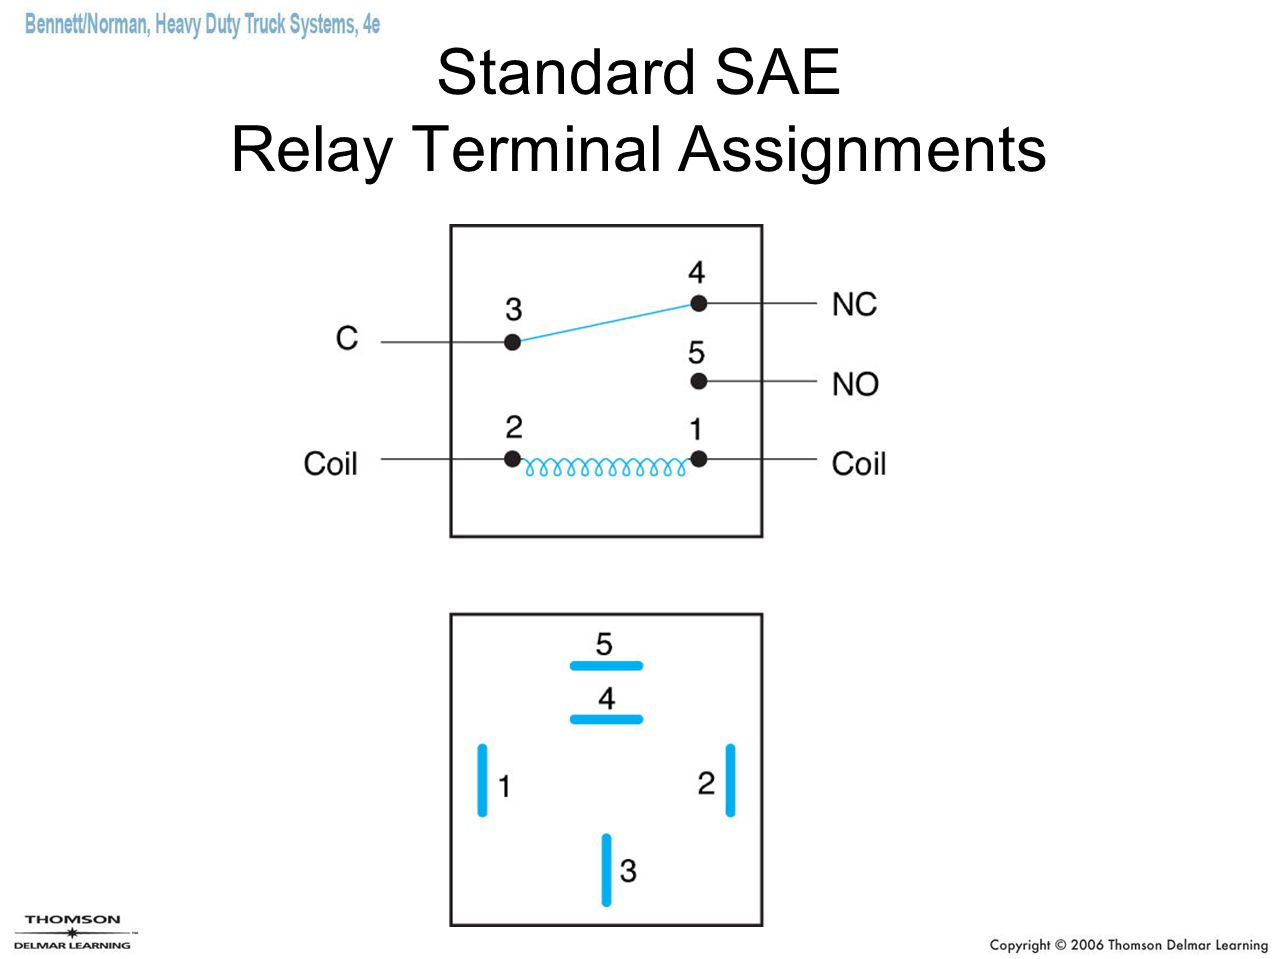 Standard SAE Relay Terminal Assignments